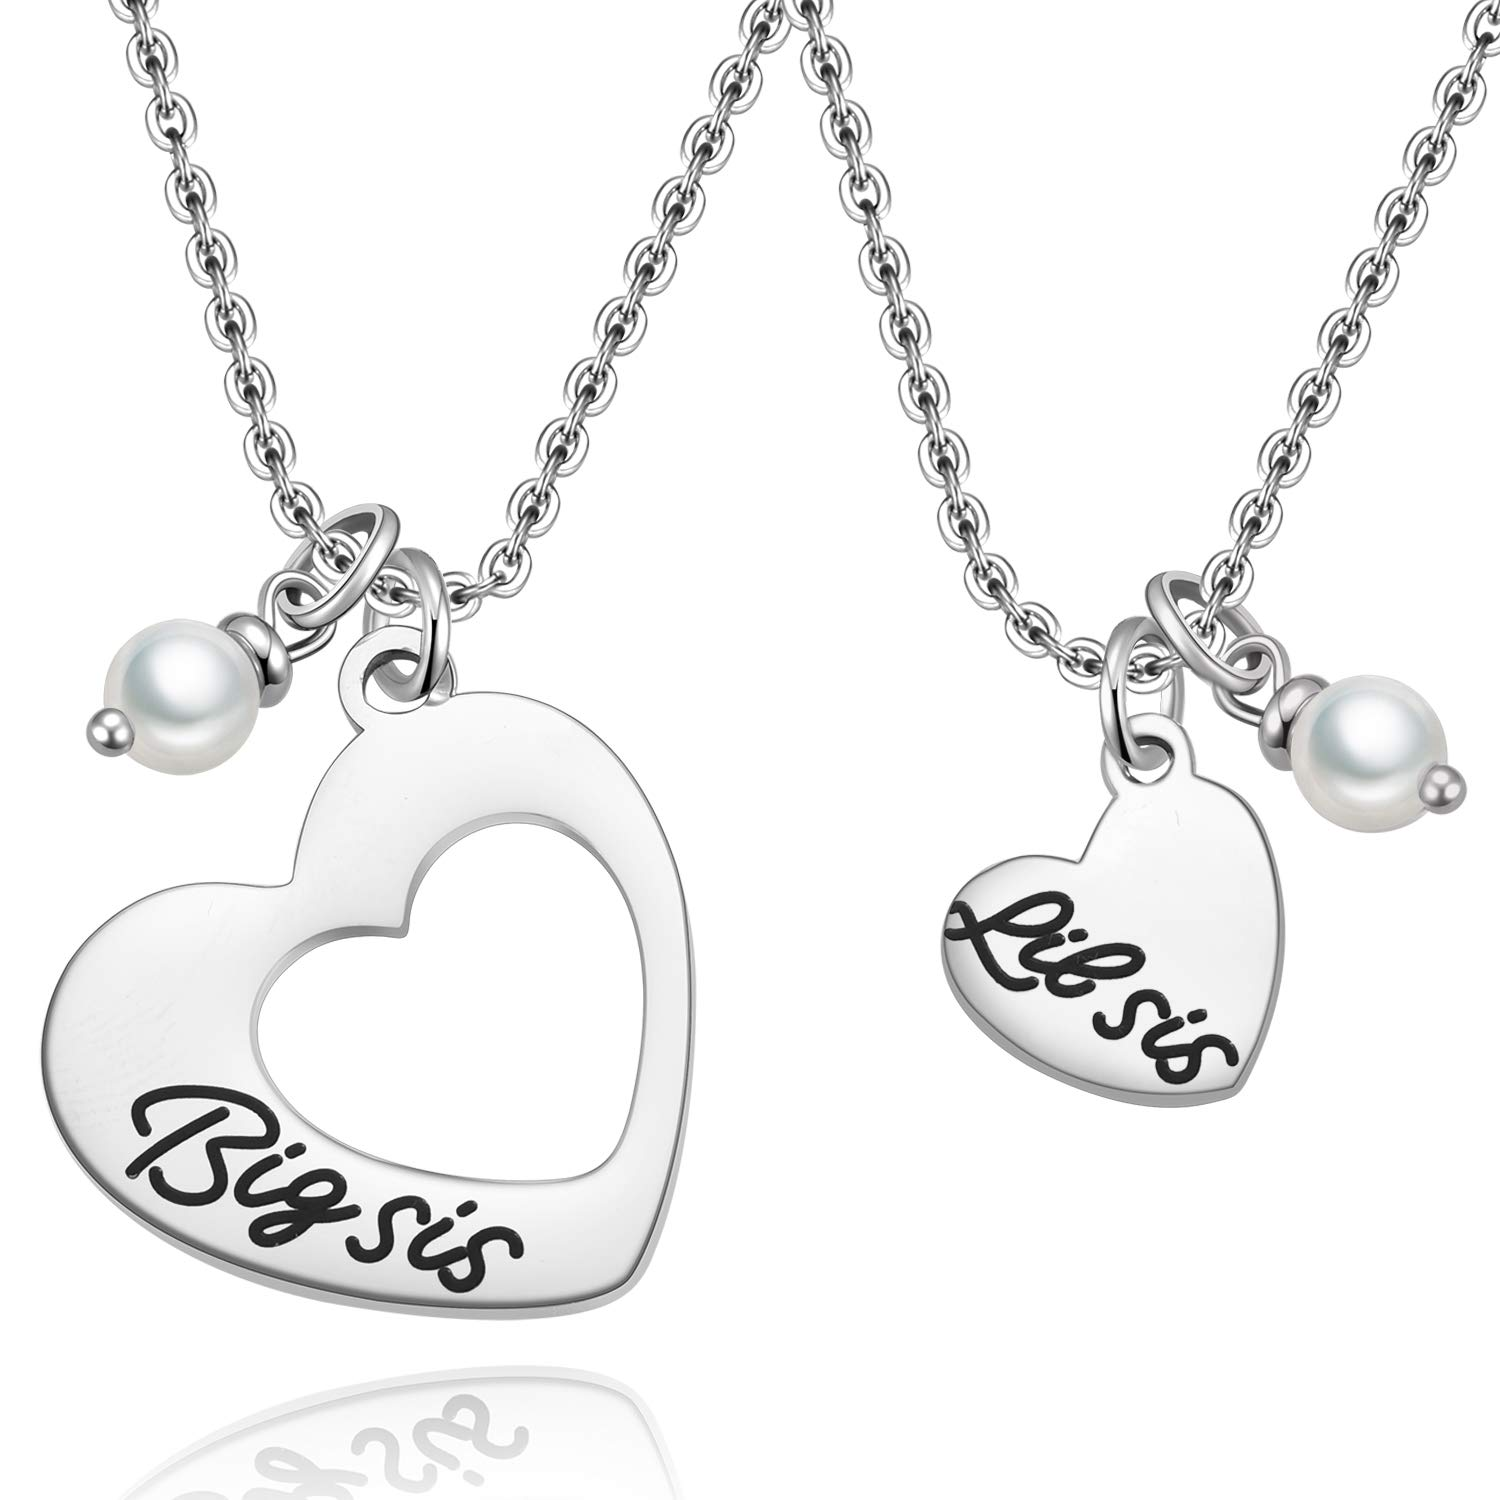 907db6bd57cd4 MIXJOY Sister Necklace for 2 Big Sis Little Sis Heart Pendant Necklace Set  Stainless Steel